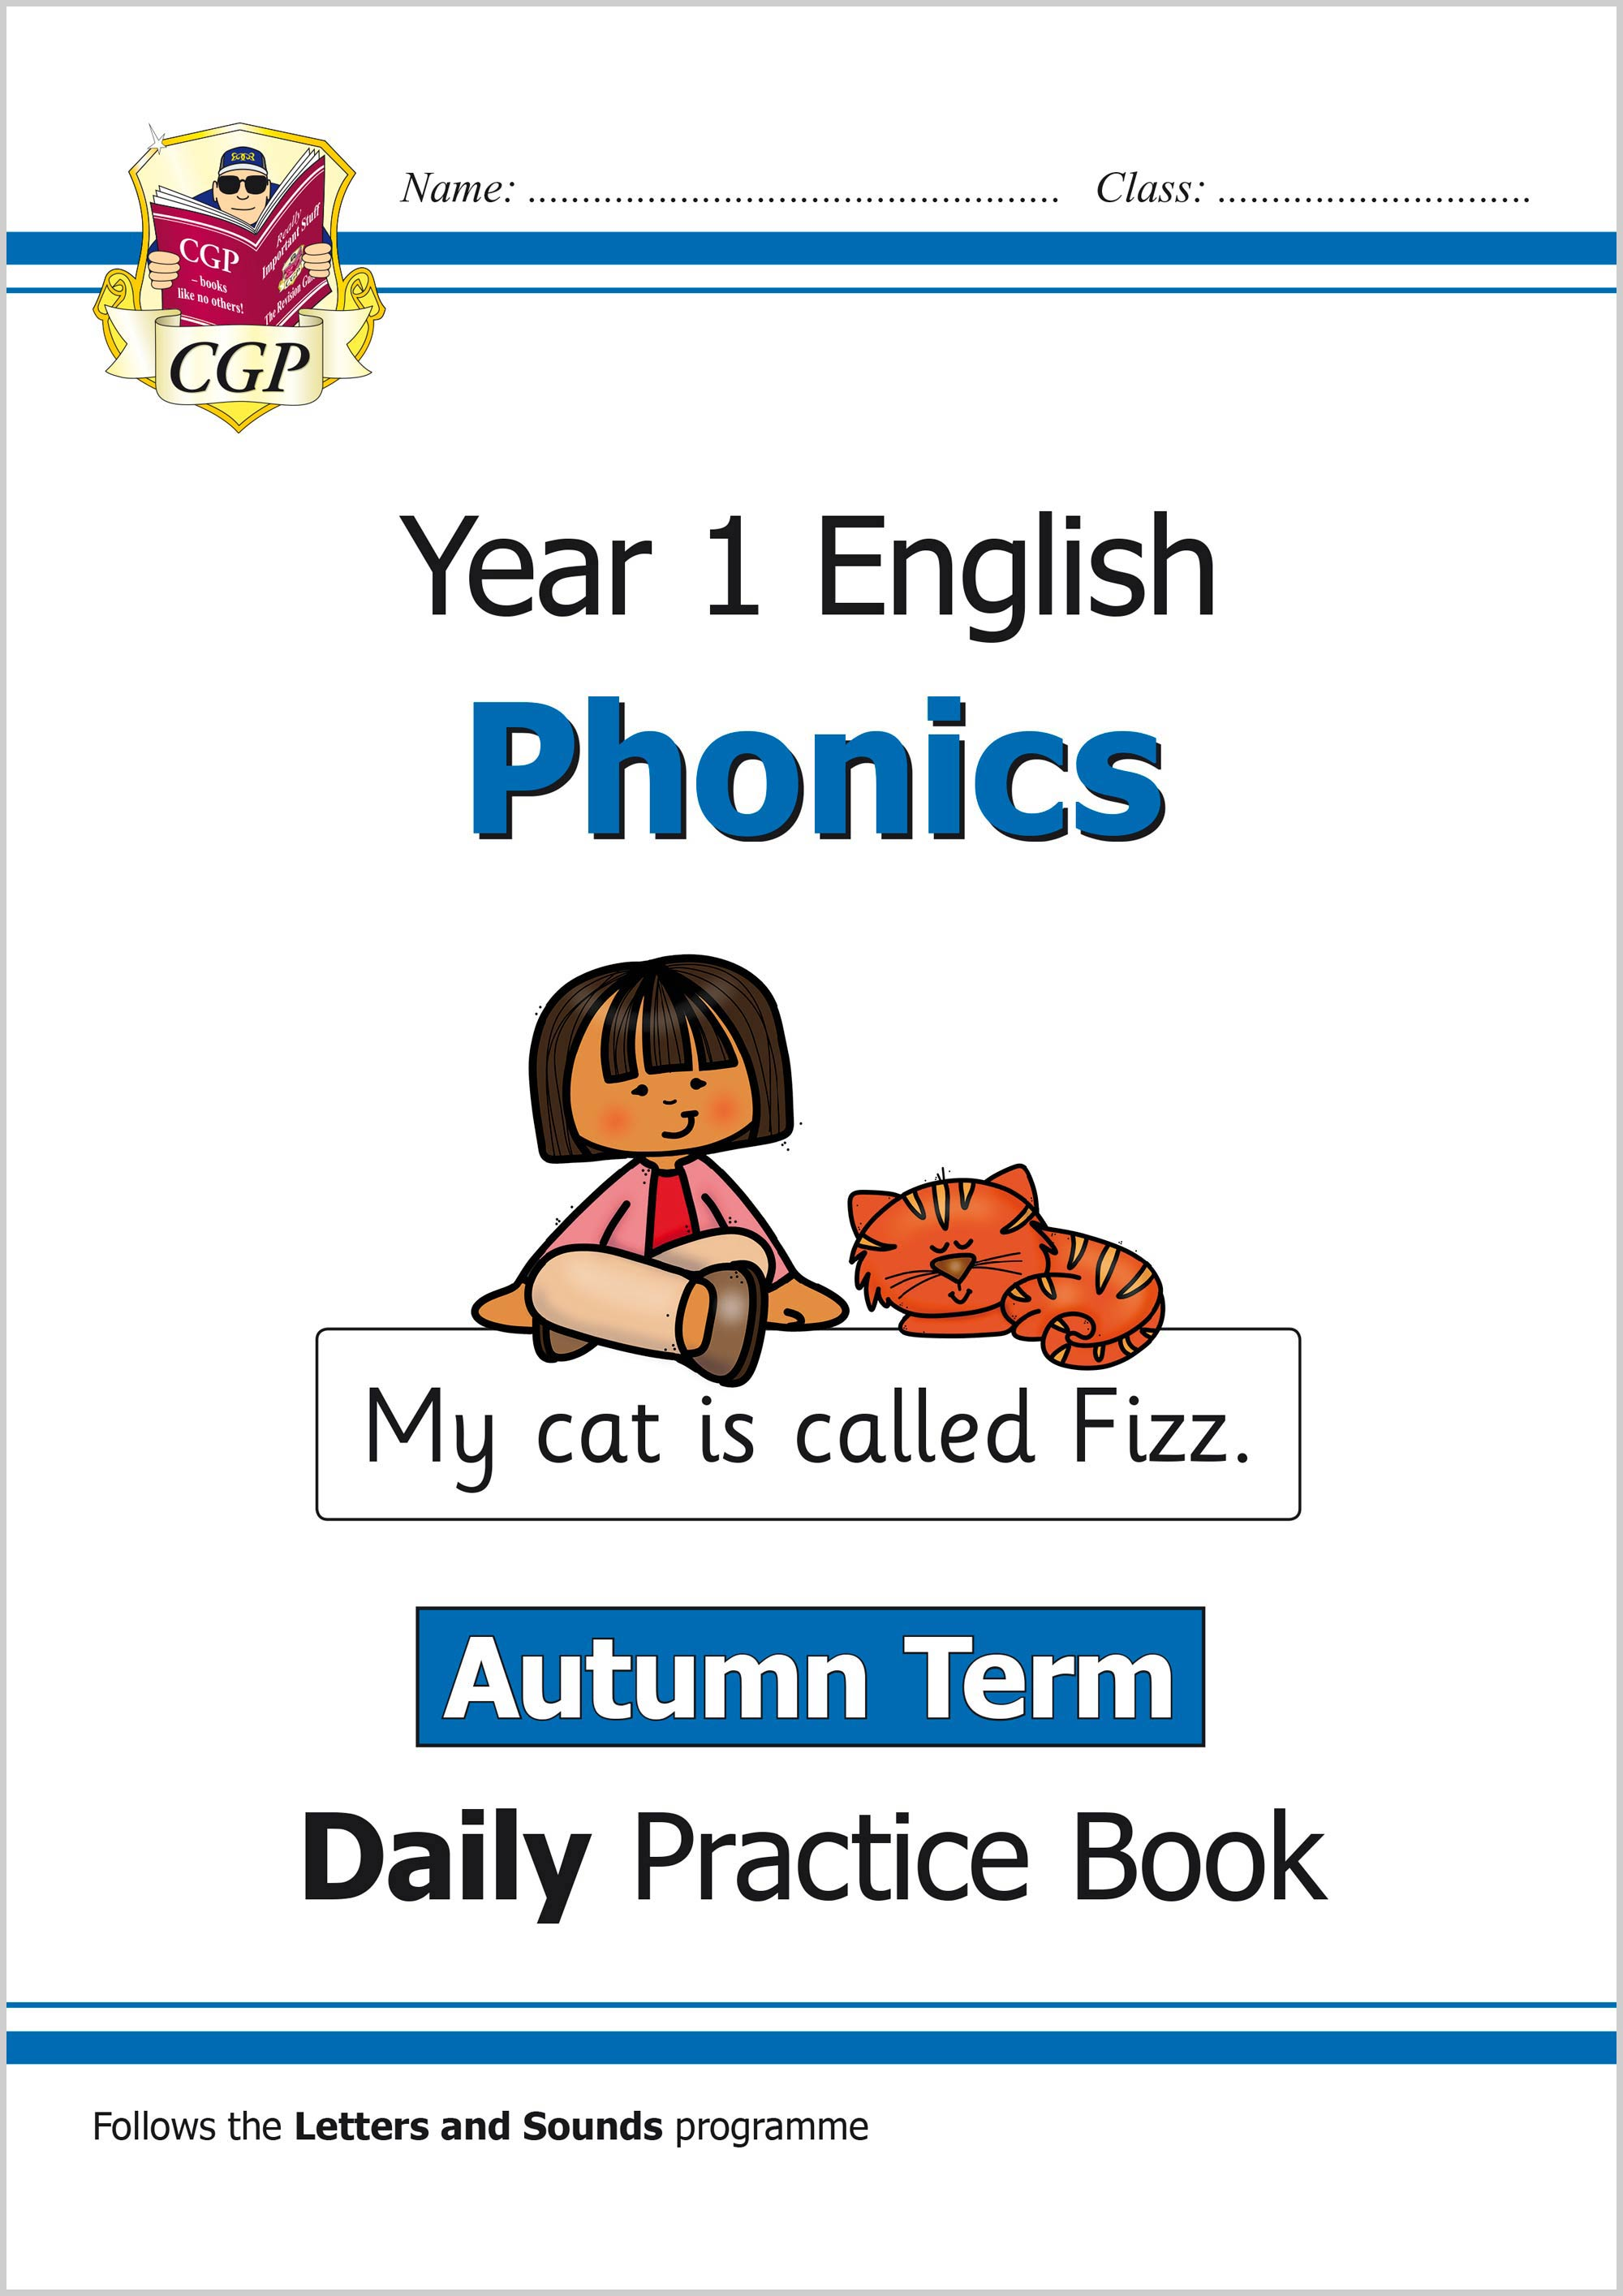 E1OWAU11 - New KS1 Phonics Daily Practice Book: Year 1 - Autumn Term